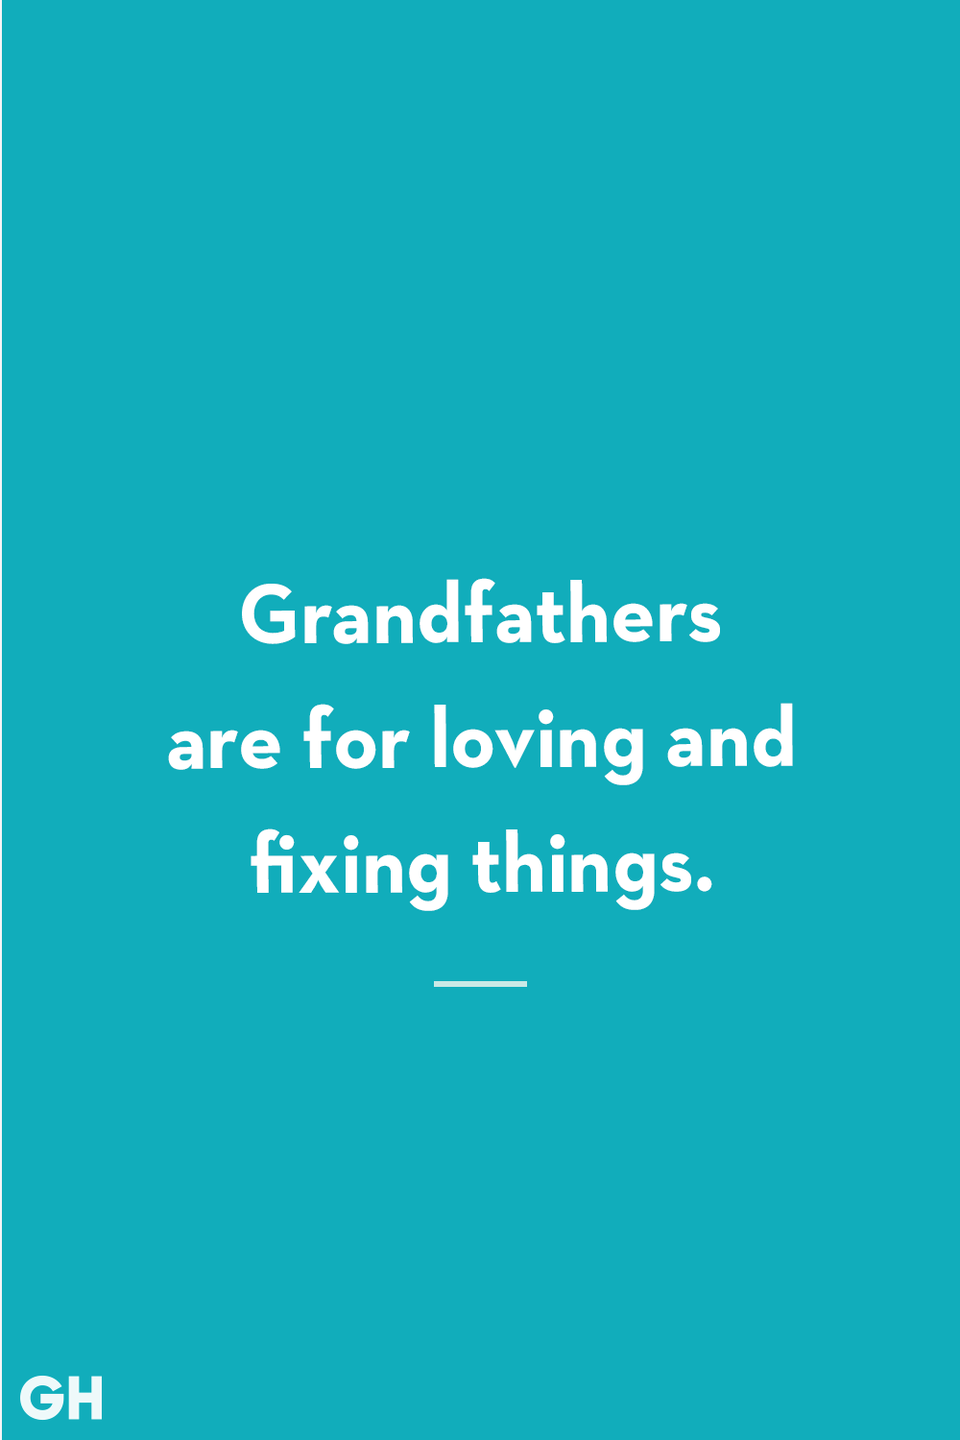 <p>Grandfathers are for loving and fixing things.</p>